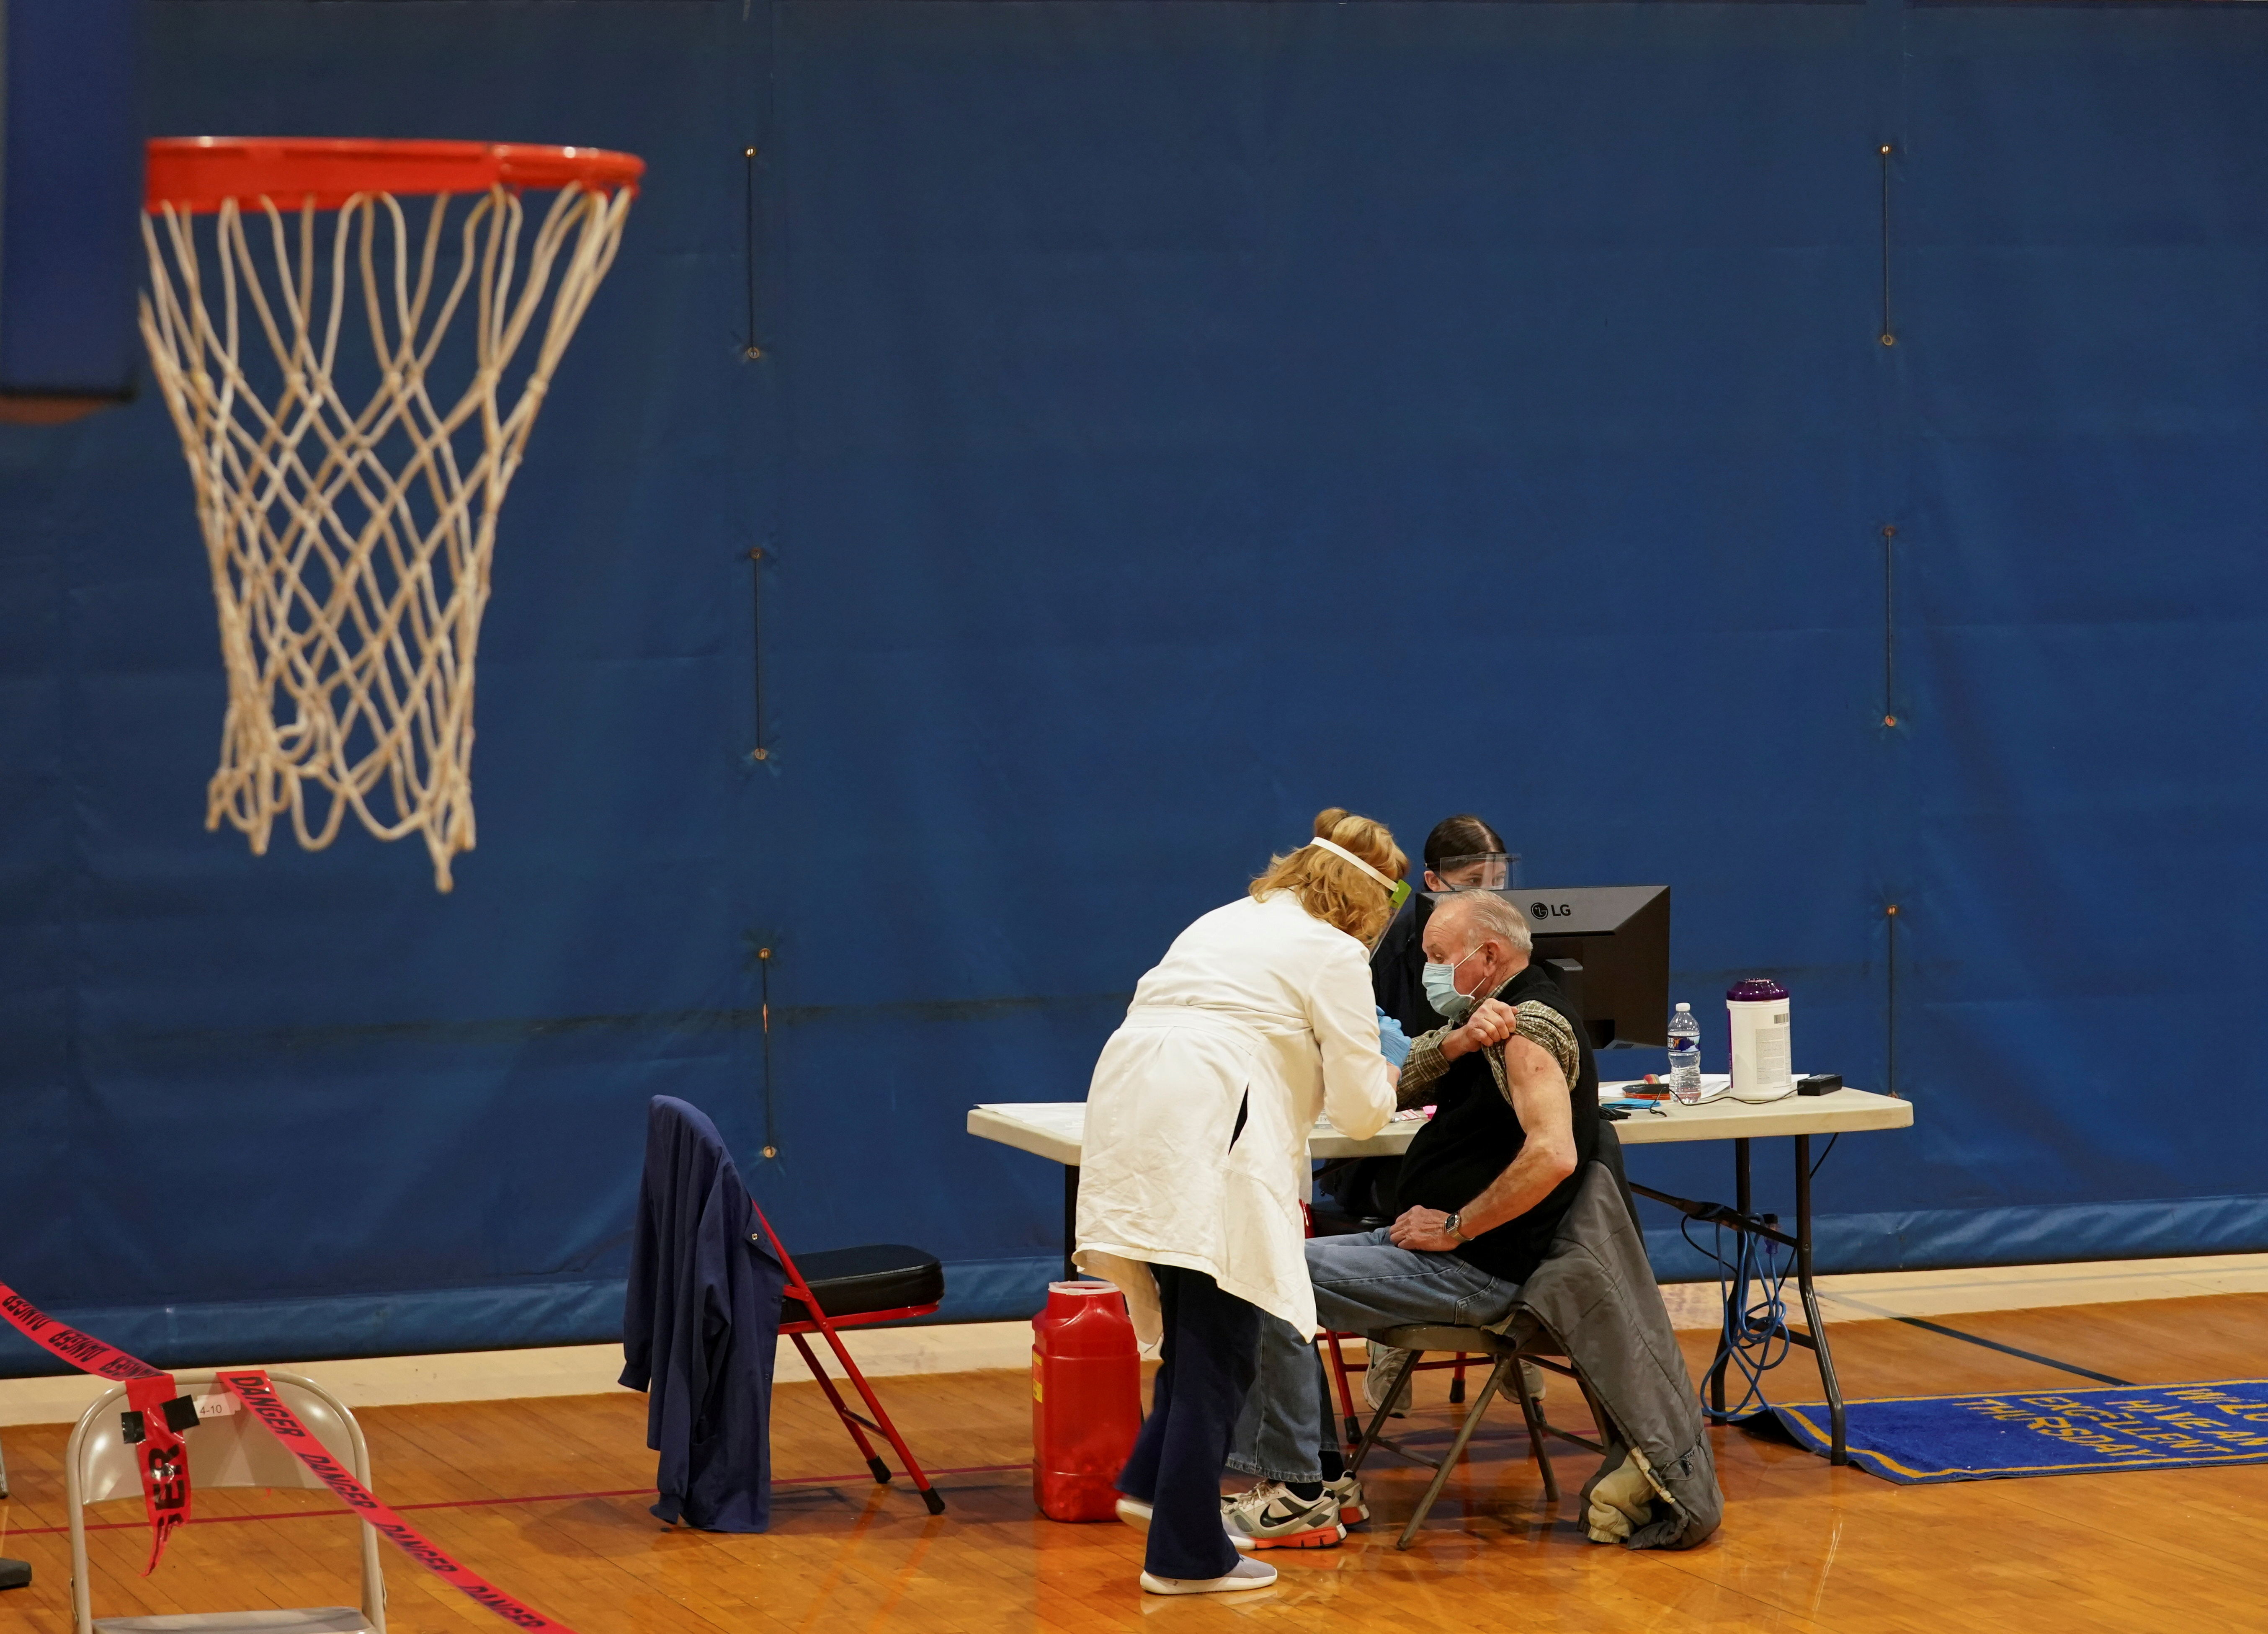 A basketball net hangs at a recreation center as patients receive their boost dose at a coronavirus disease (COVID-19) community vaccination event, as the vaccination rate in West Virginia ranks among highest in world, in Martinsburg, U.S. February 25, 2021. REUTERS/Kevin Lamarque/File Photo